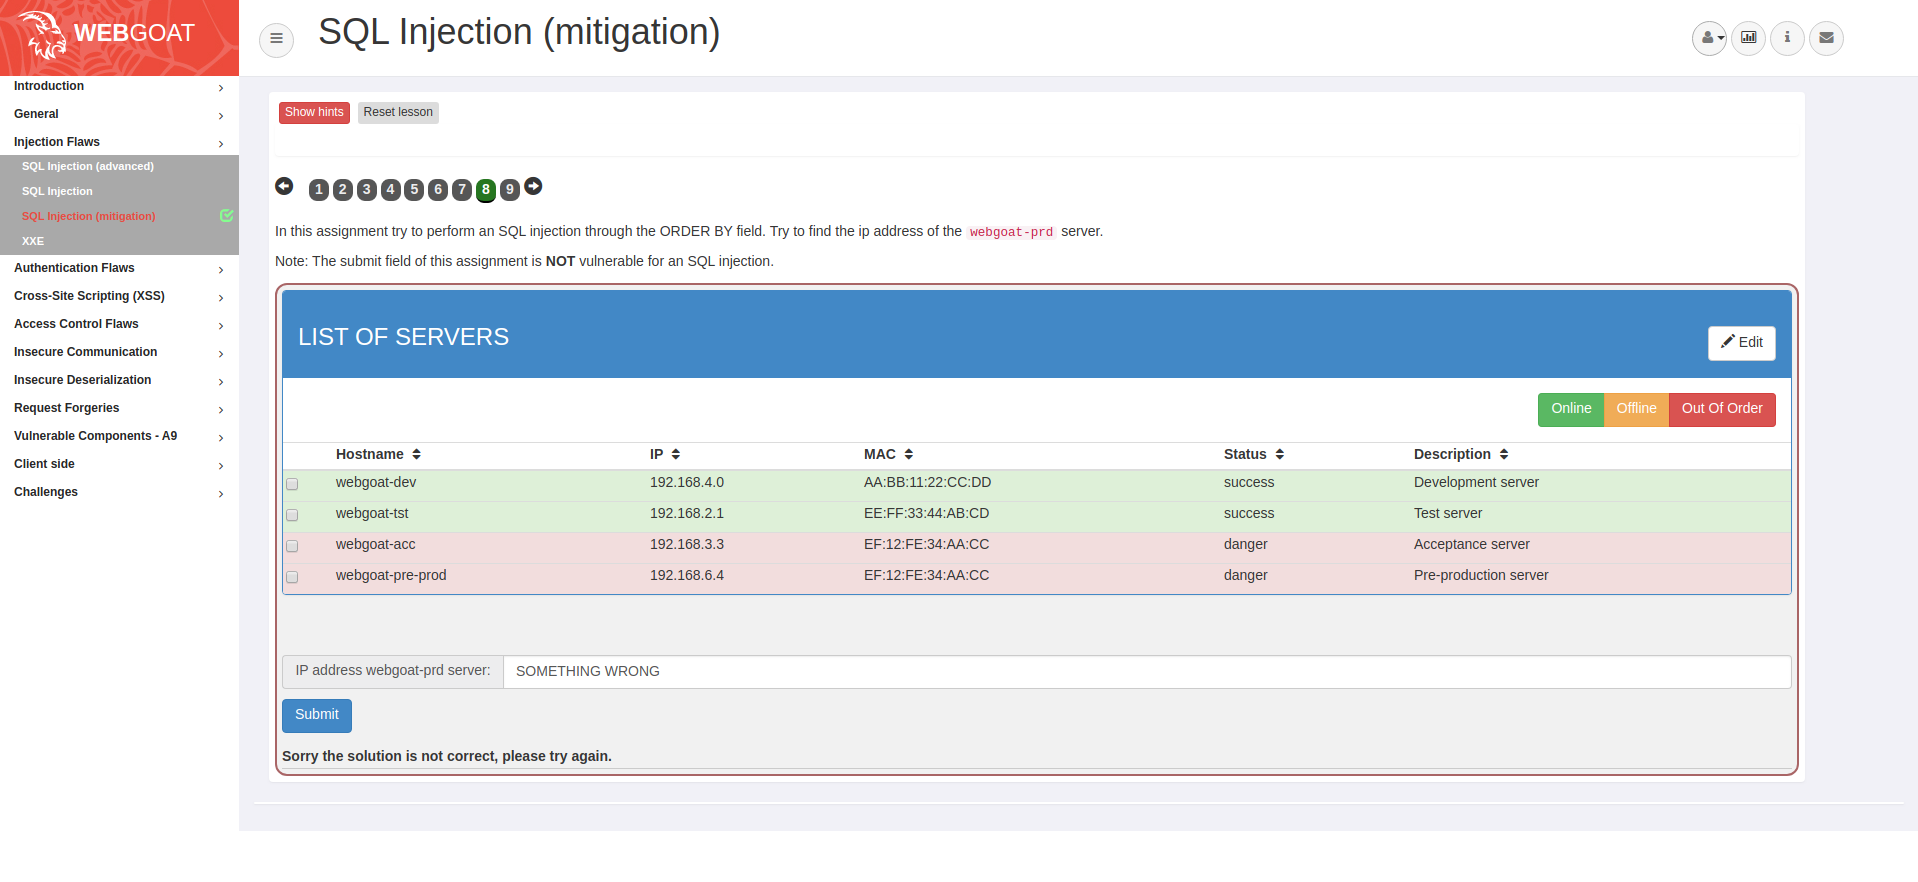 SQL Injection (mitigation) bug · Issue #505 · WebGoat/WebGoat · GitHub